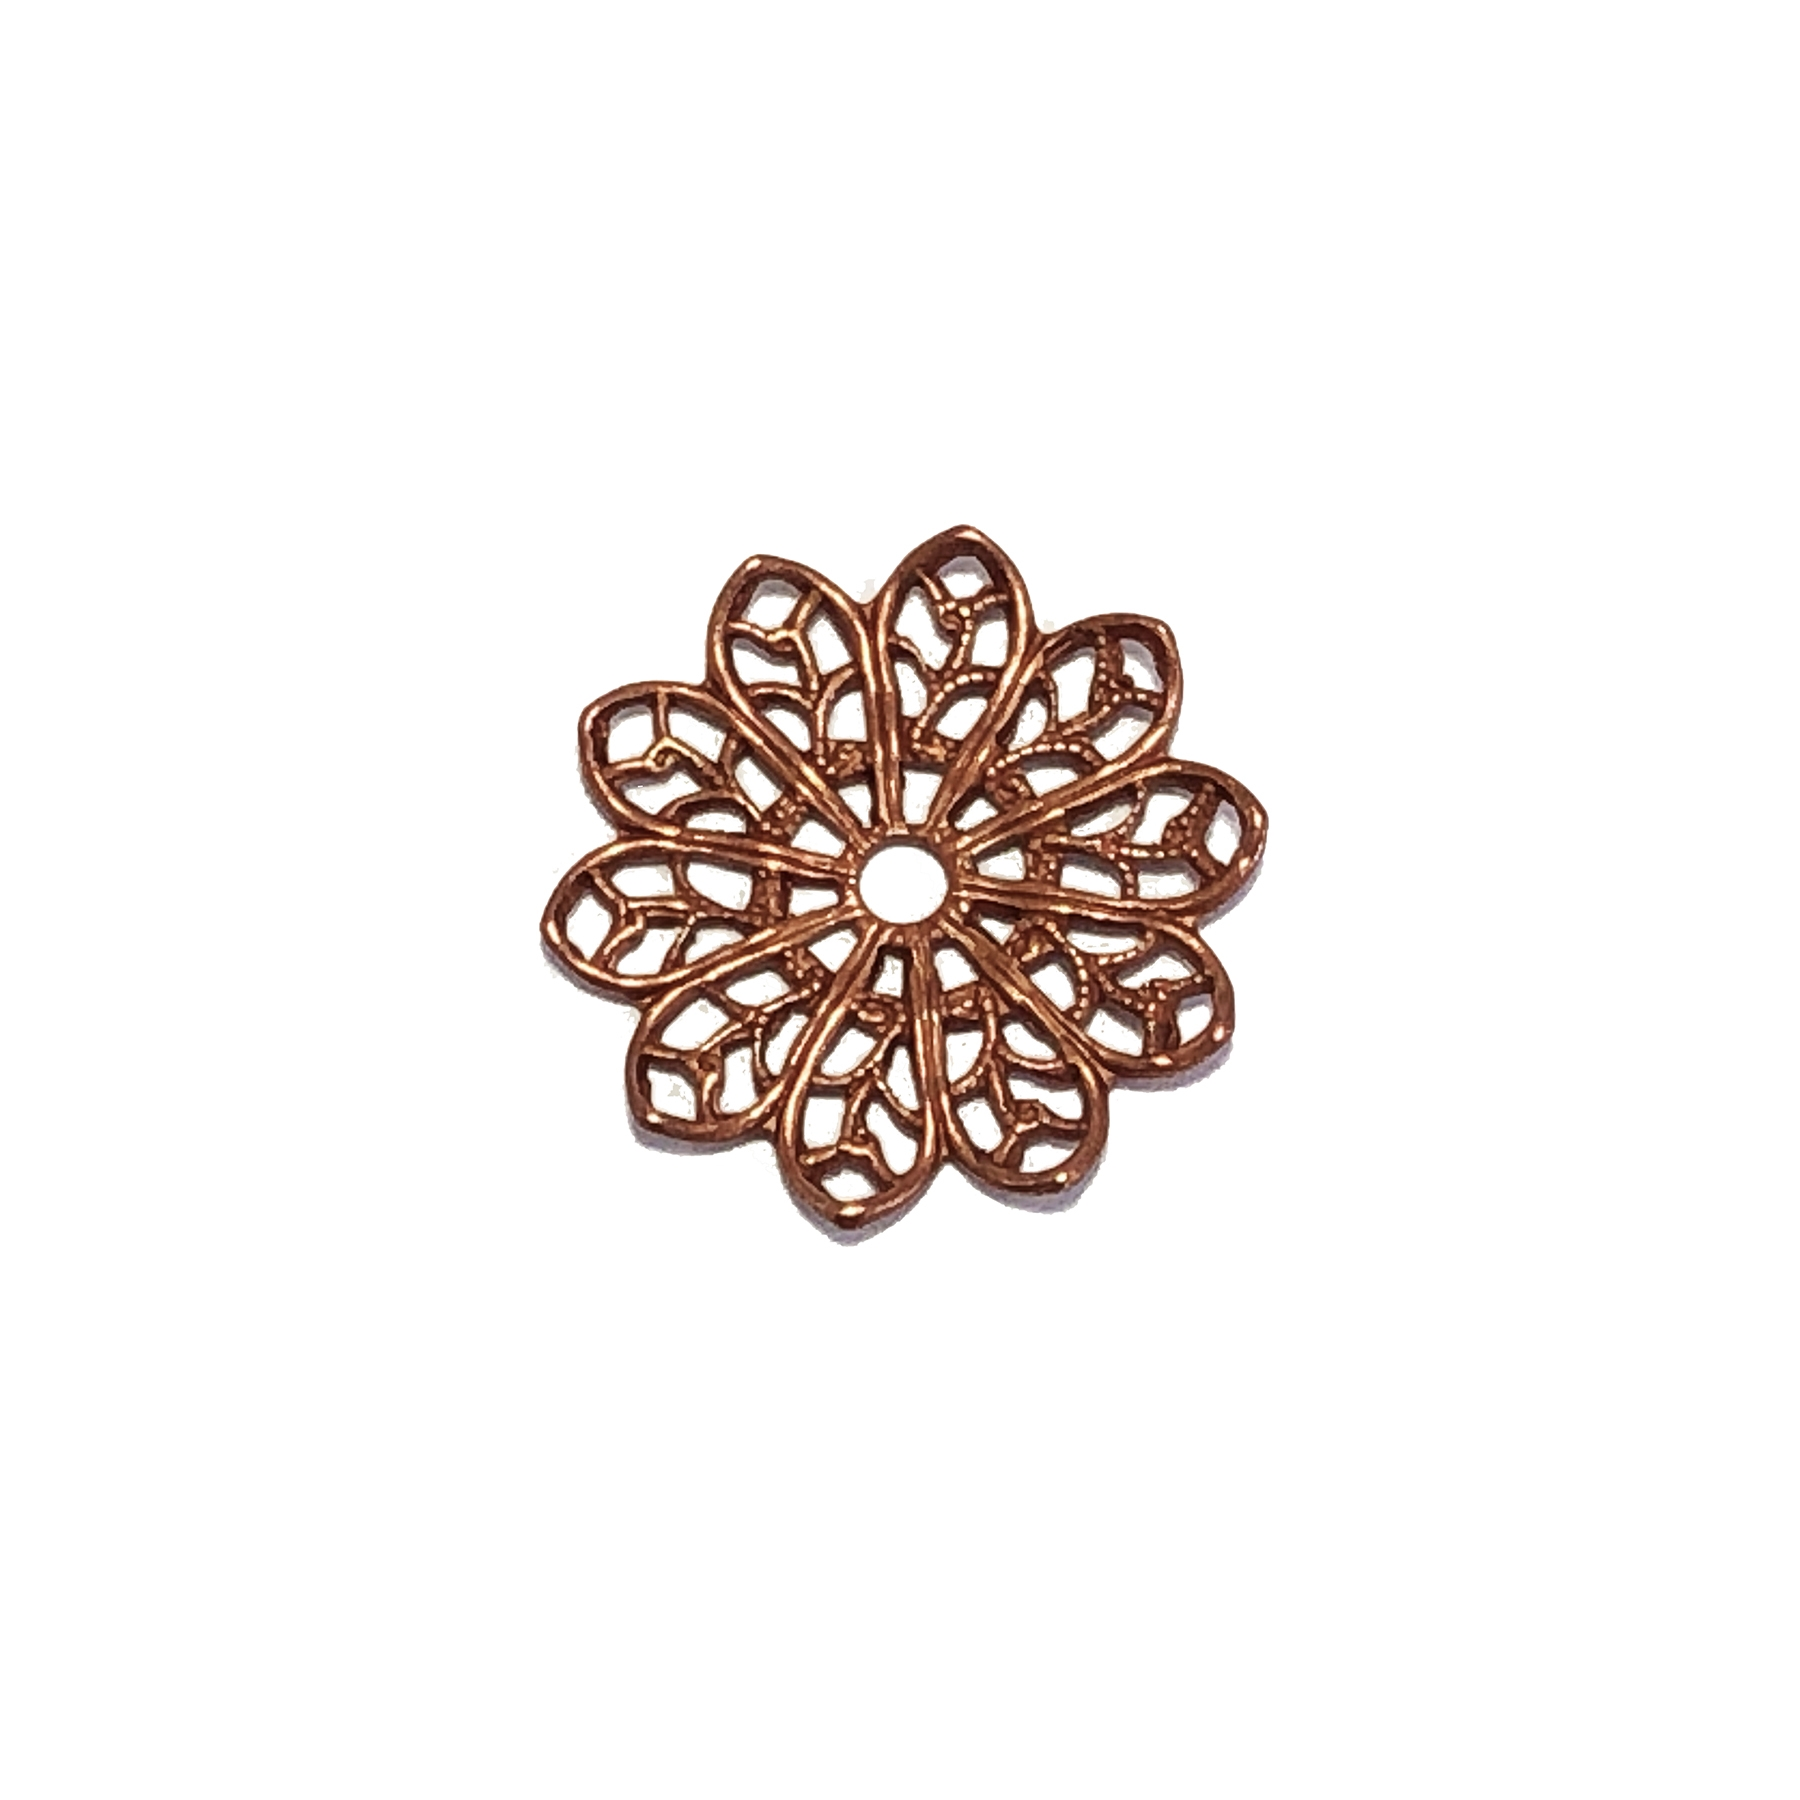 beading flower filigree, filigree, Haskell style, gingerbread, beading, beading filigree, plated brass, old jewelry parts, brass stampings, brass filigree, 0537, beading flower, 19mm